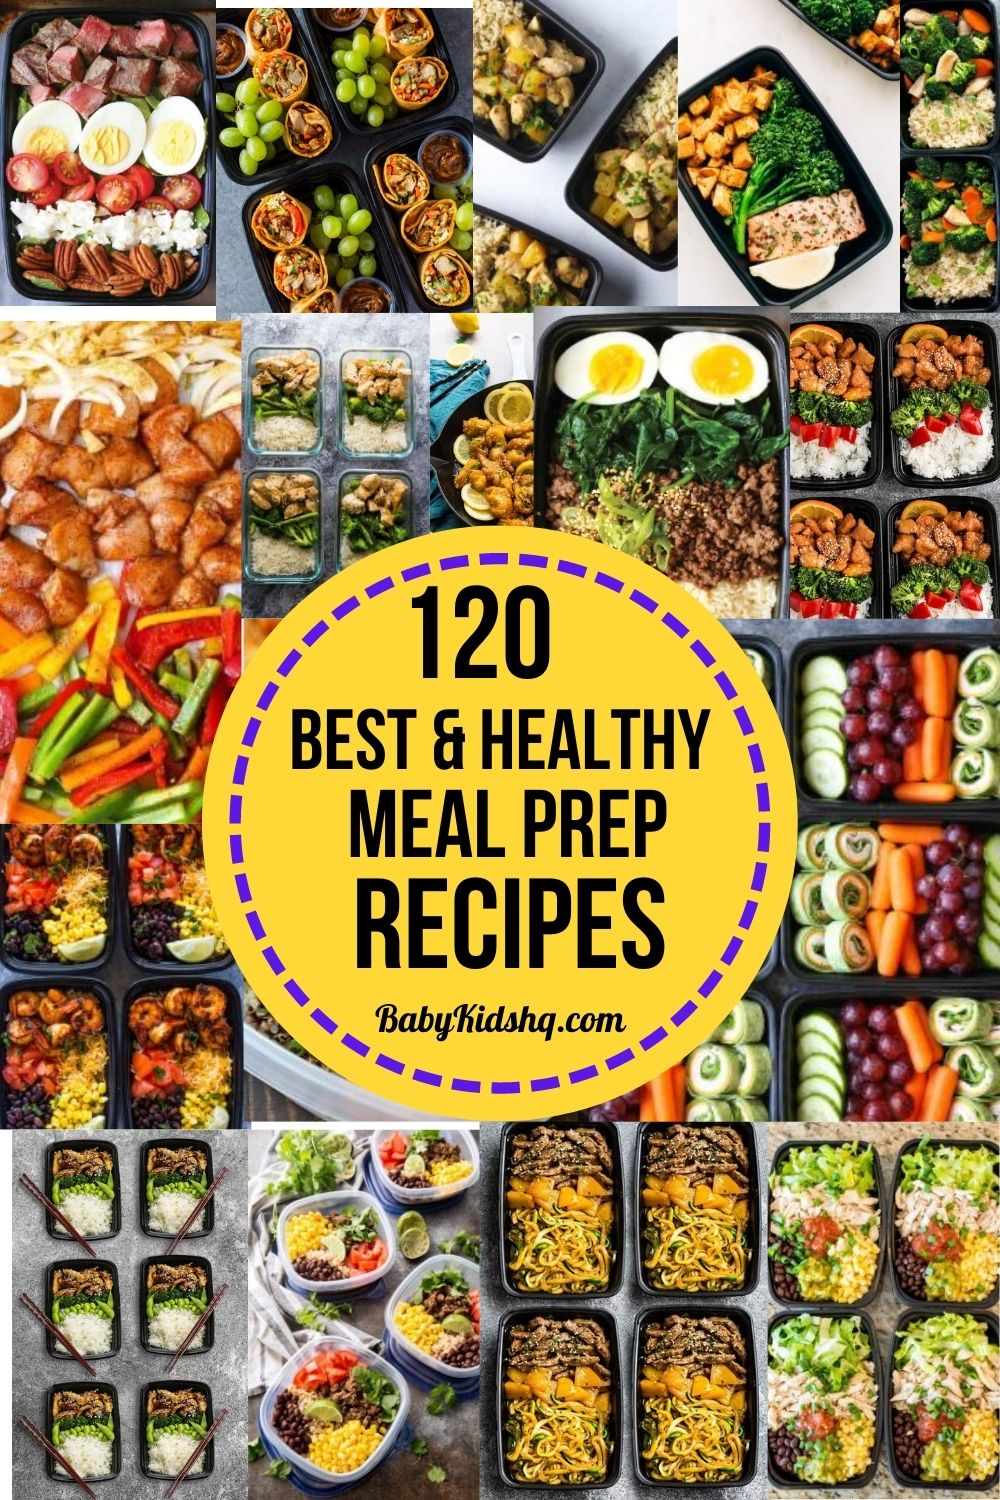 120 Best and Healthy Meal Prep Recipes